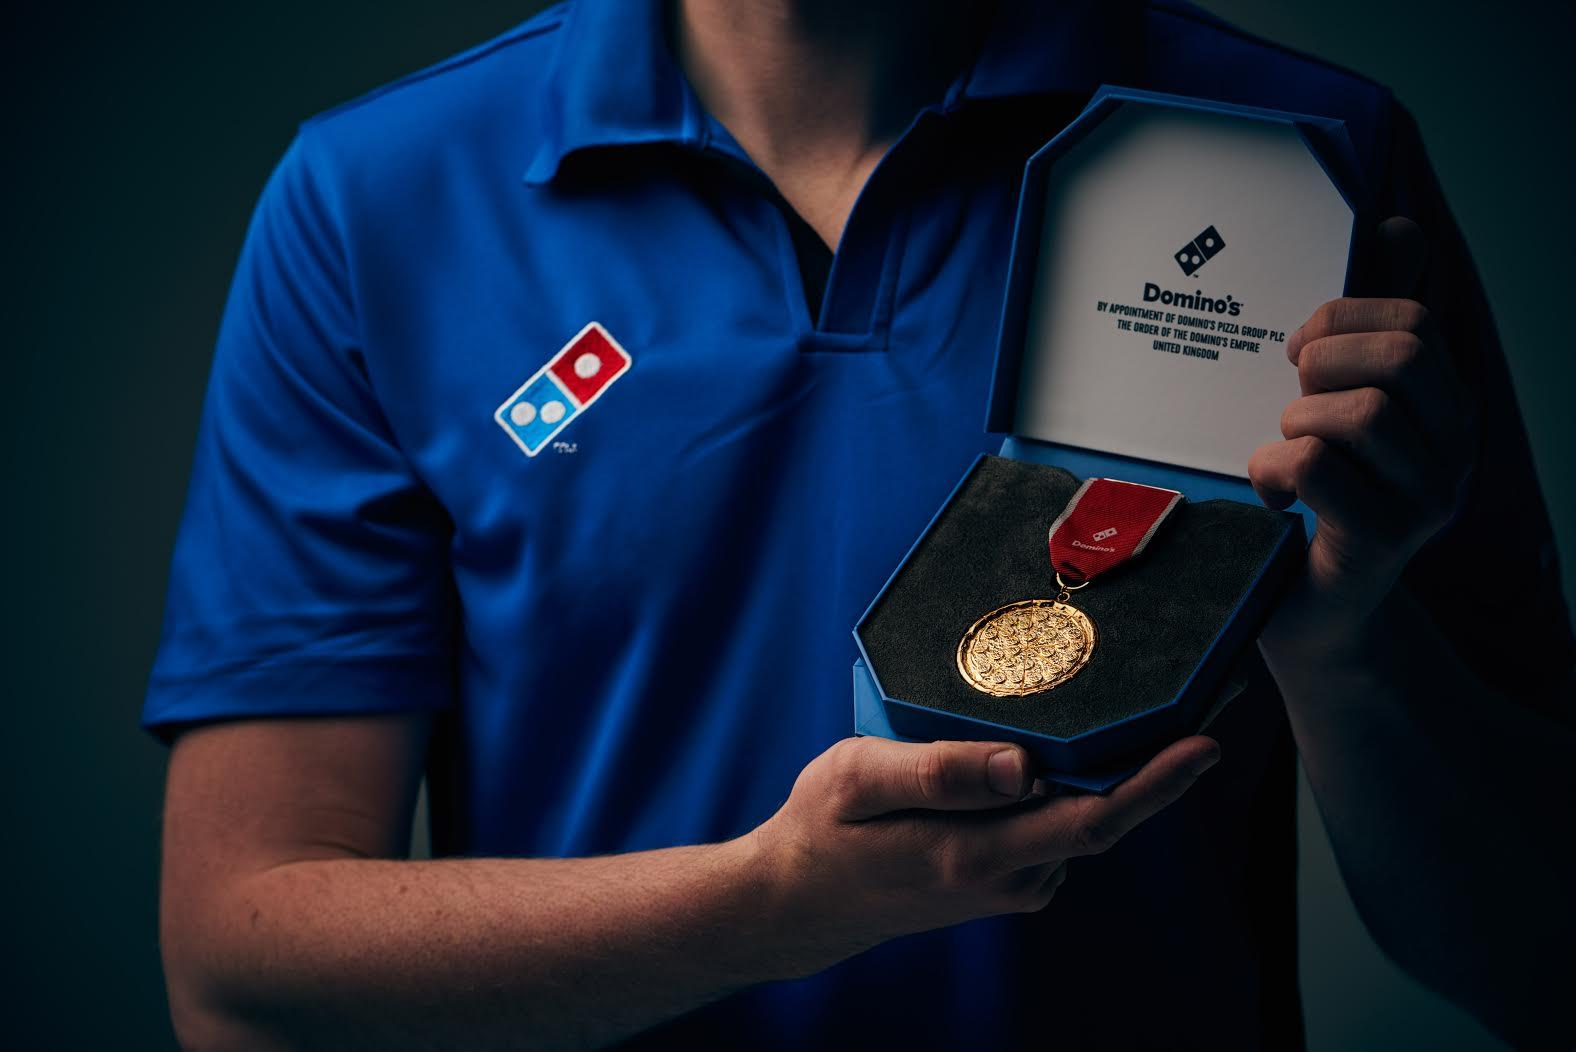 A Loughborough student has been given free Domino's for a year